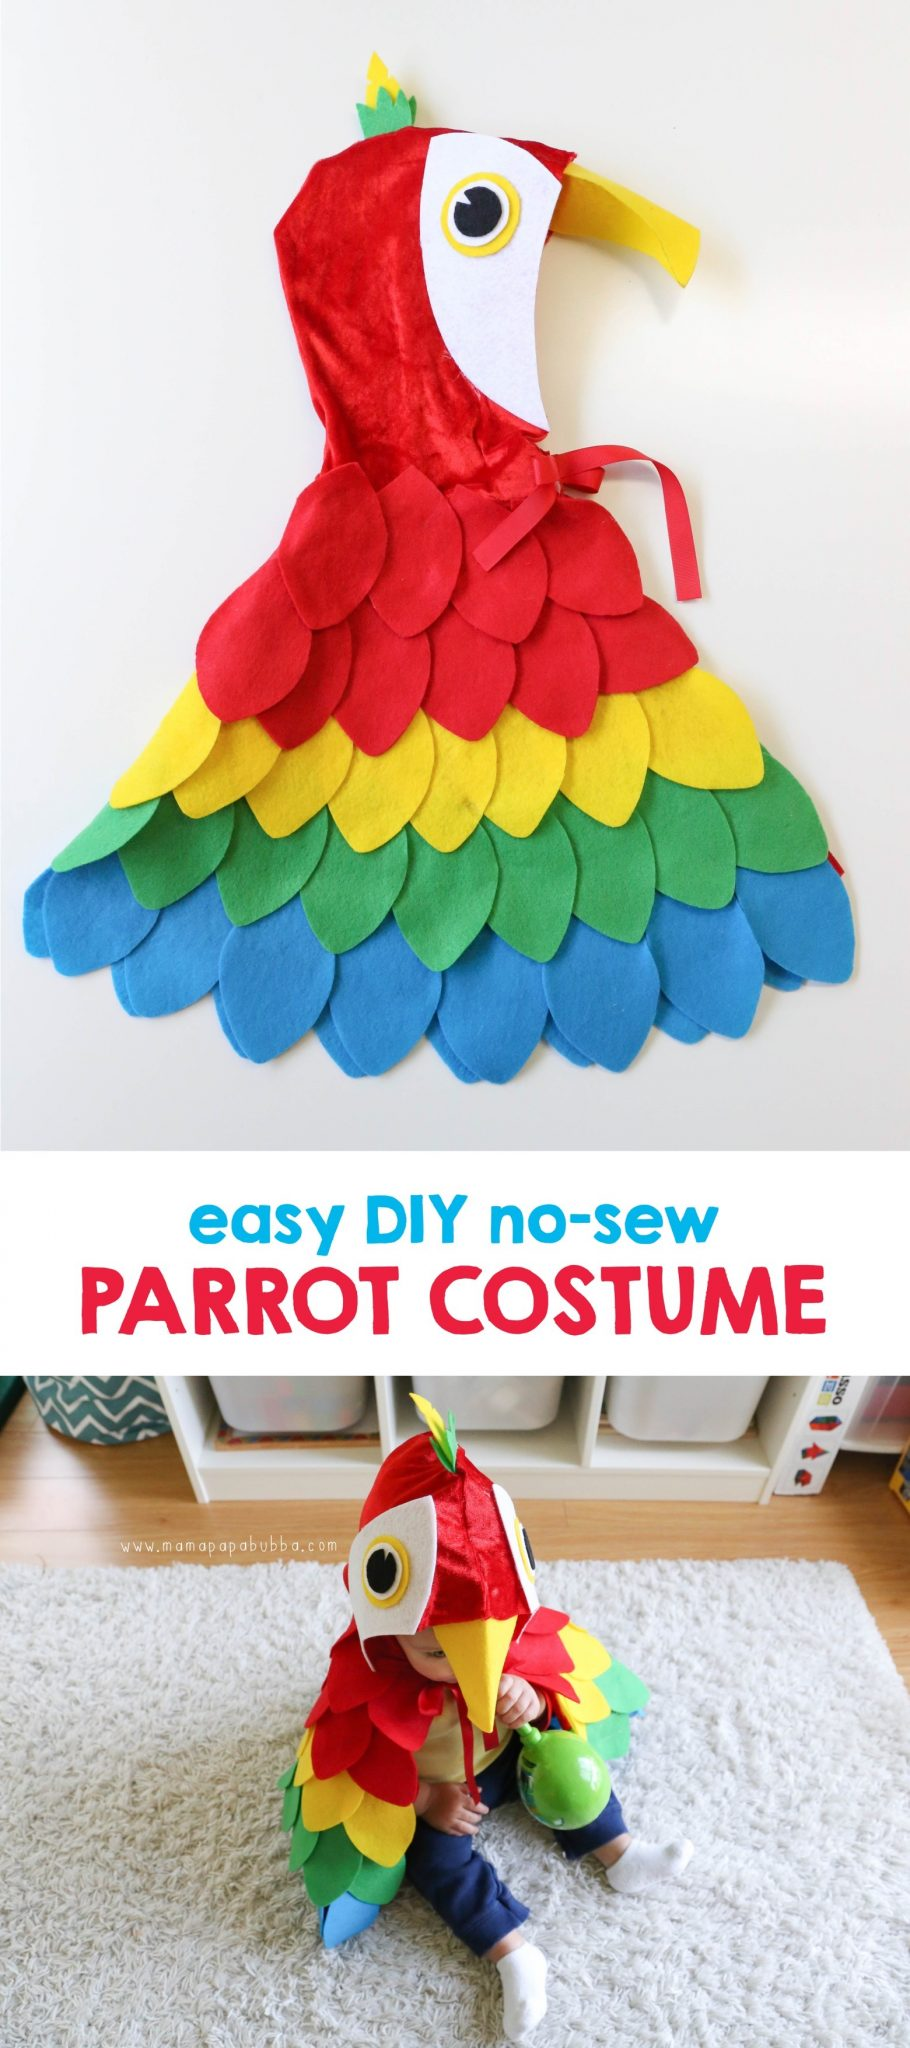 Easy DIY Parrot Costume | Mama Papa Bubba